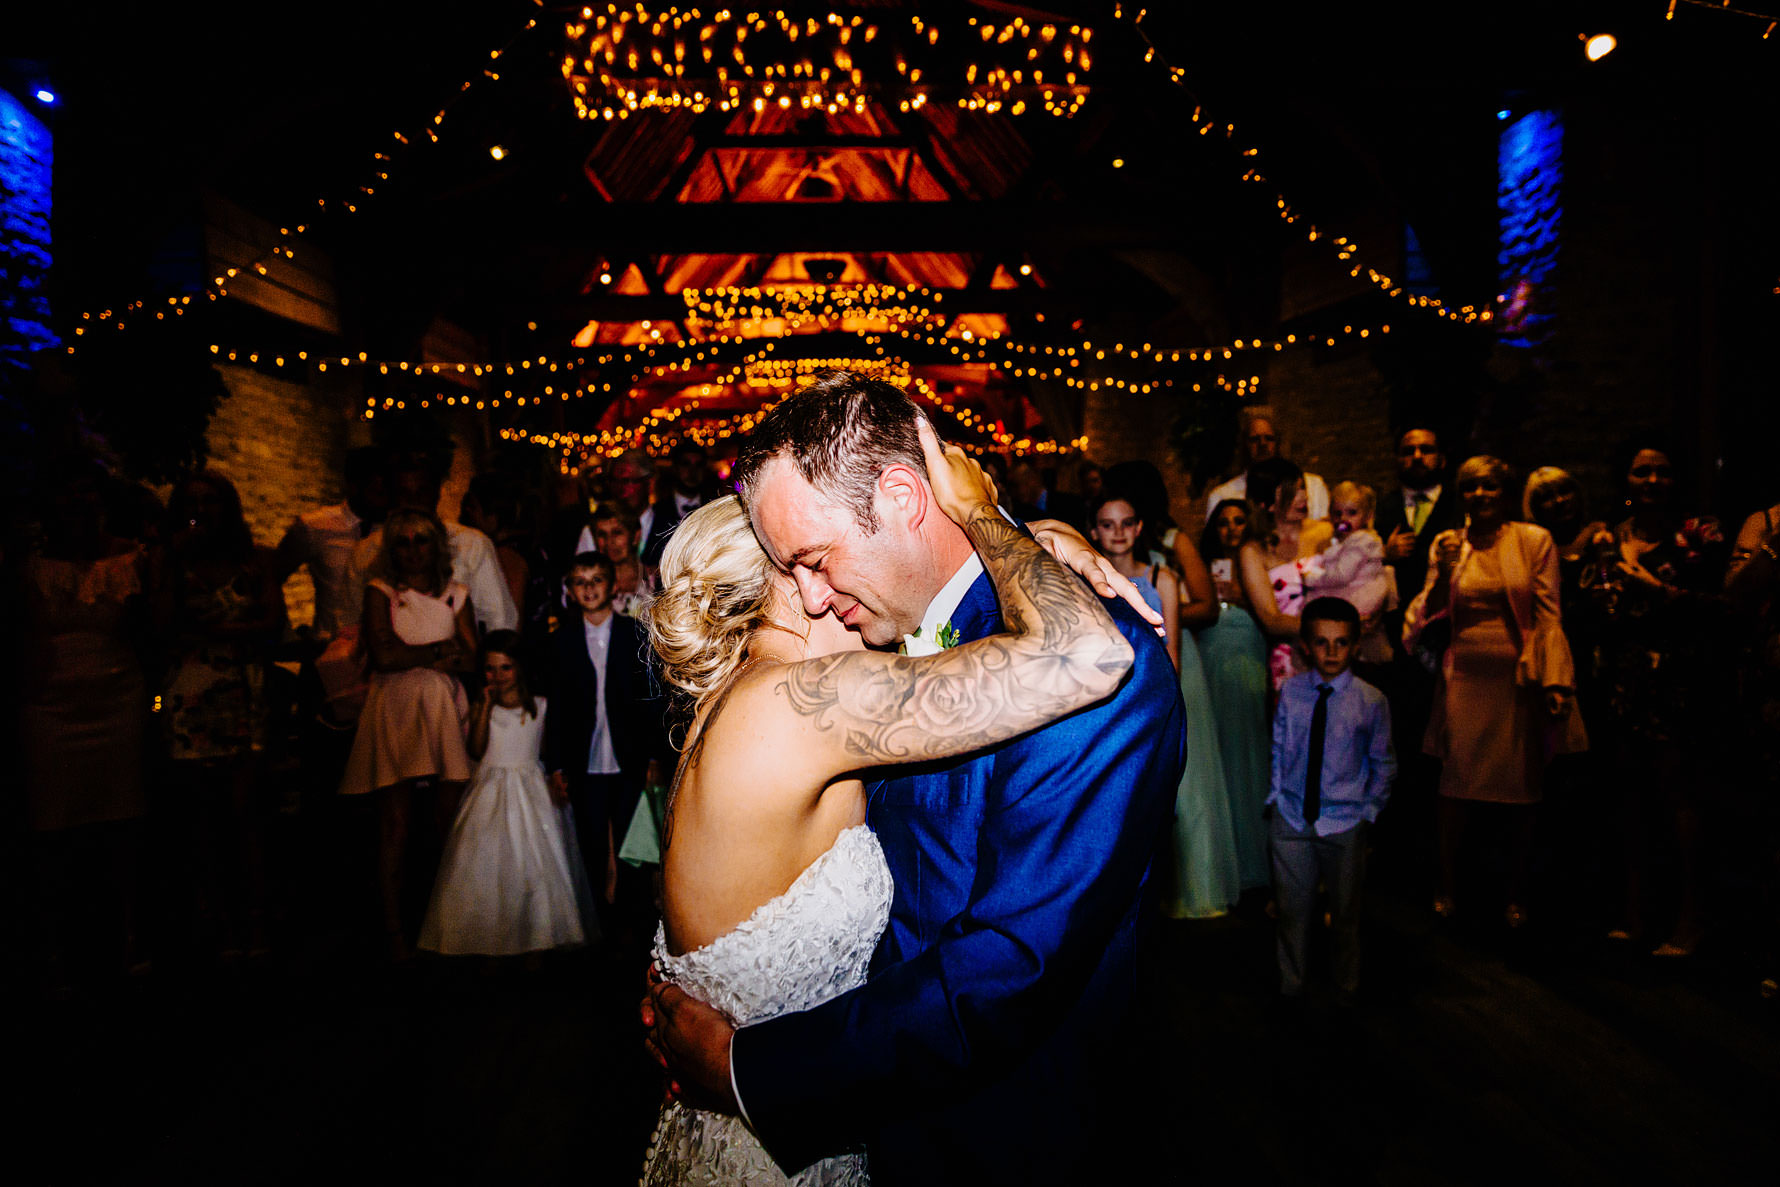 a tender moment between a bride and groom